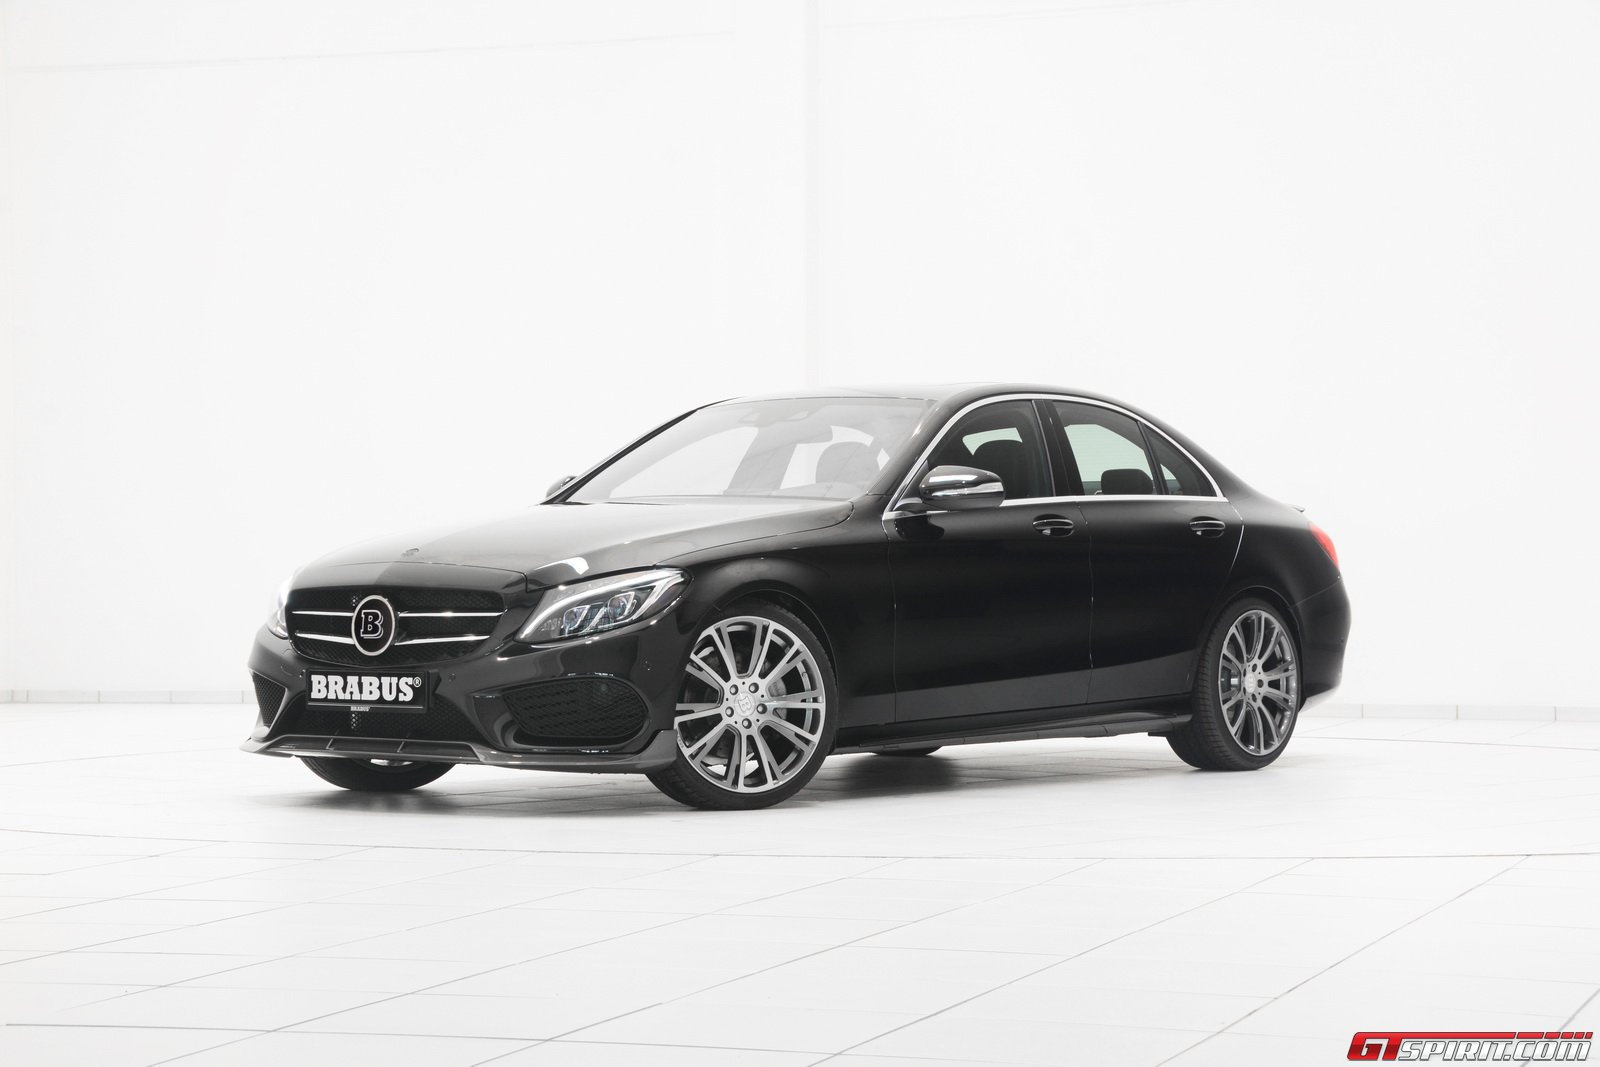 Official brabus mercedes benz c class amg line gtspirit for Mercedes benz g class brabus